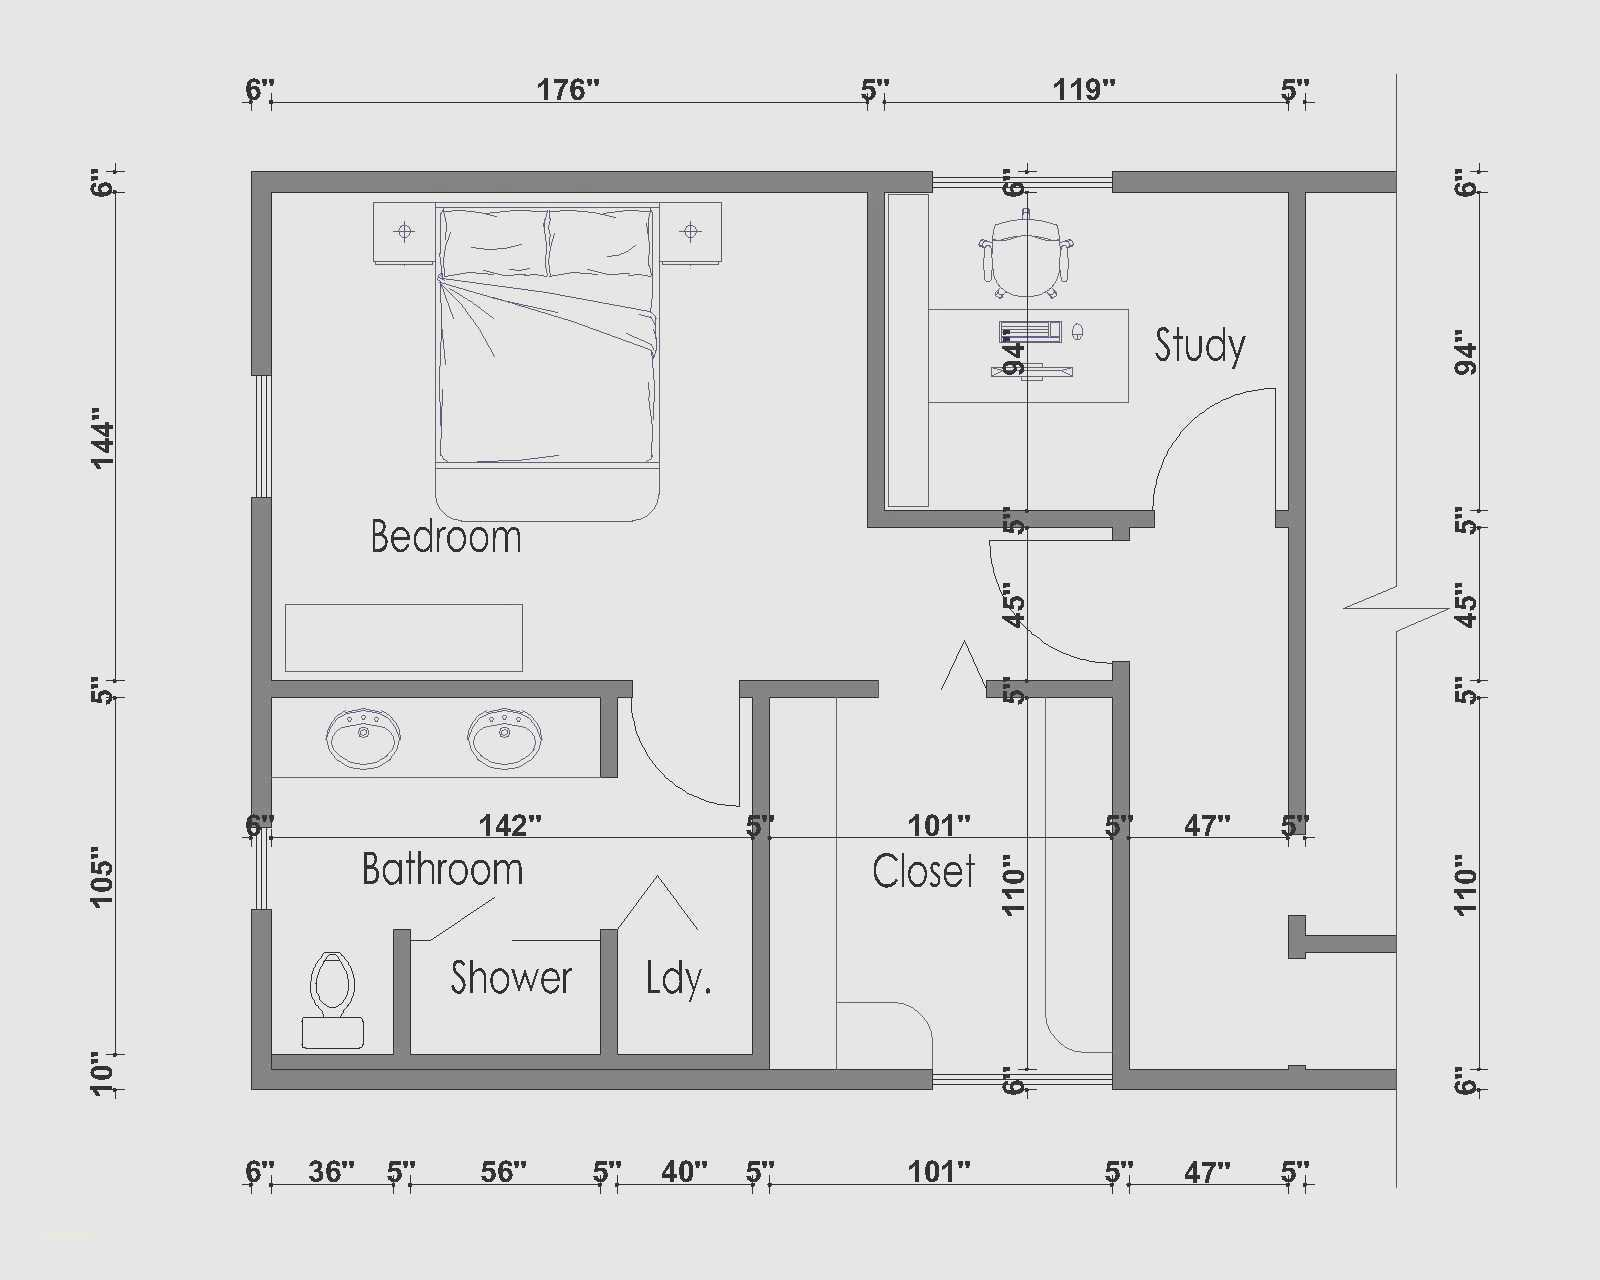 Master Bedroom Sitting Room Floor Plans Awesome - House Plans